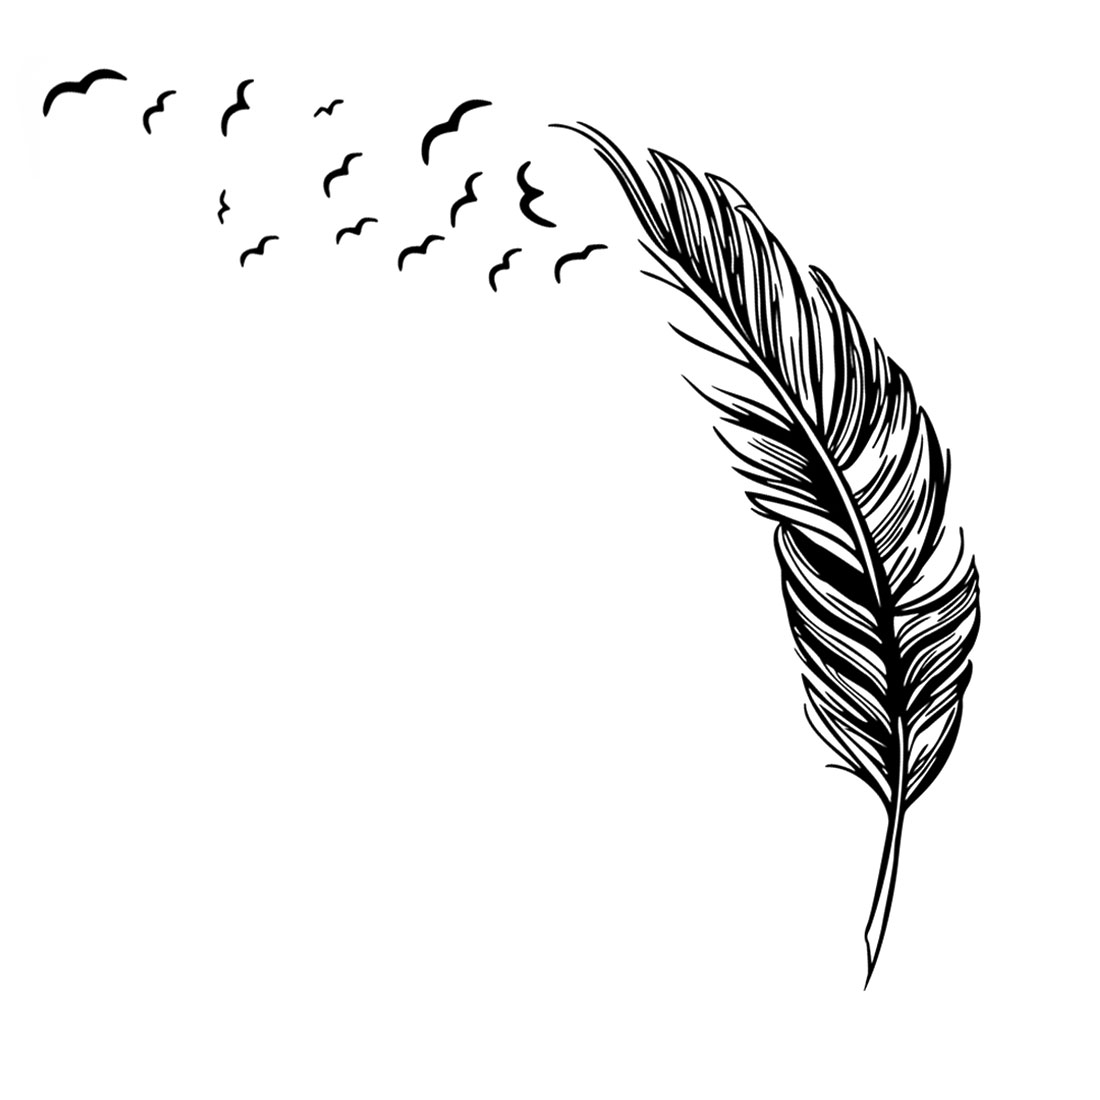 Home Office PVC Feather Print Self-adhesive Window Film Protector Wall Decal Sticker Wallpaper Black